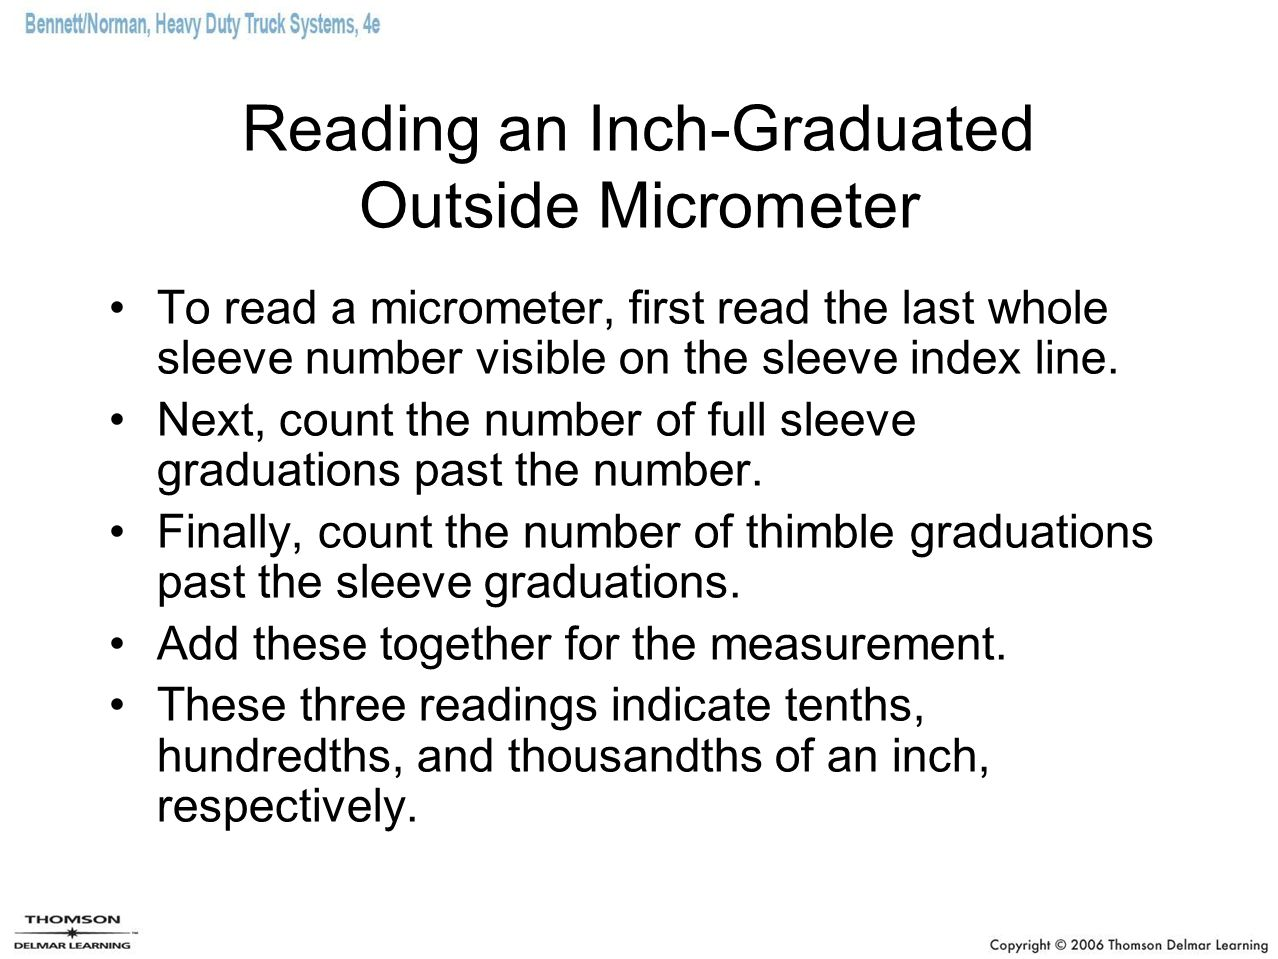 Reading an Inch-Graduated Outside Micrometer